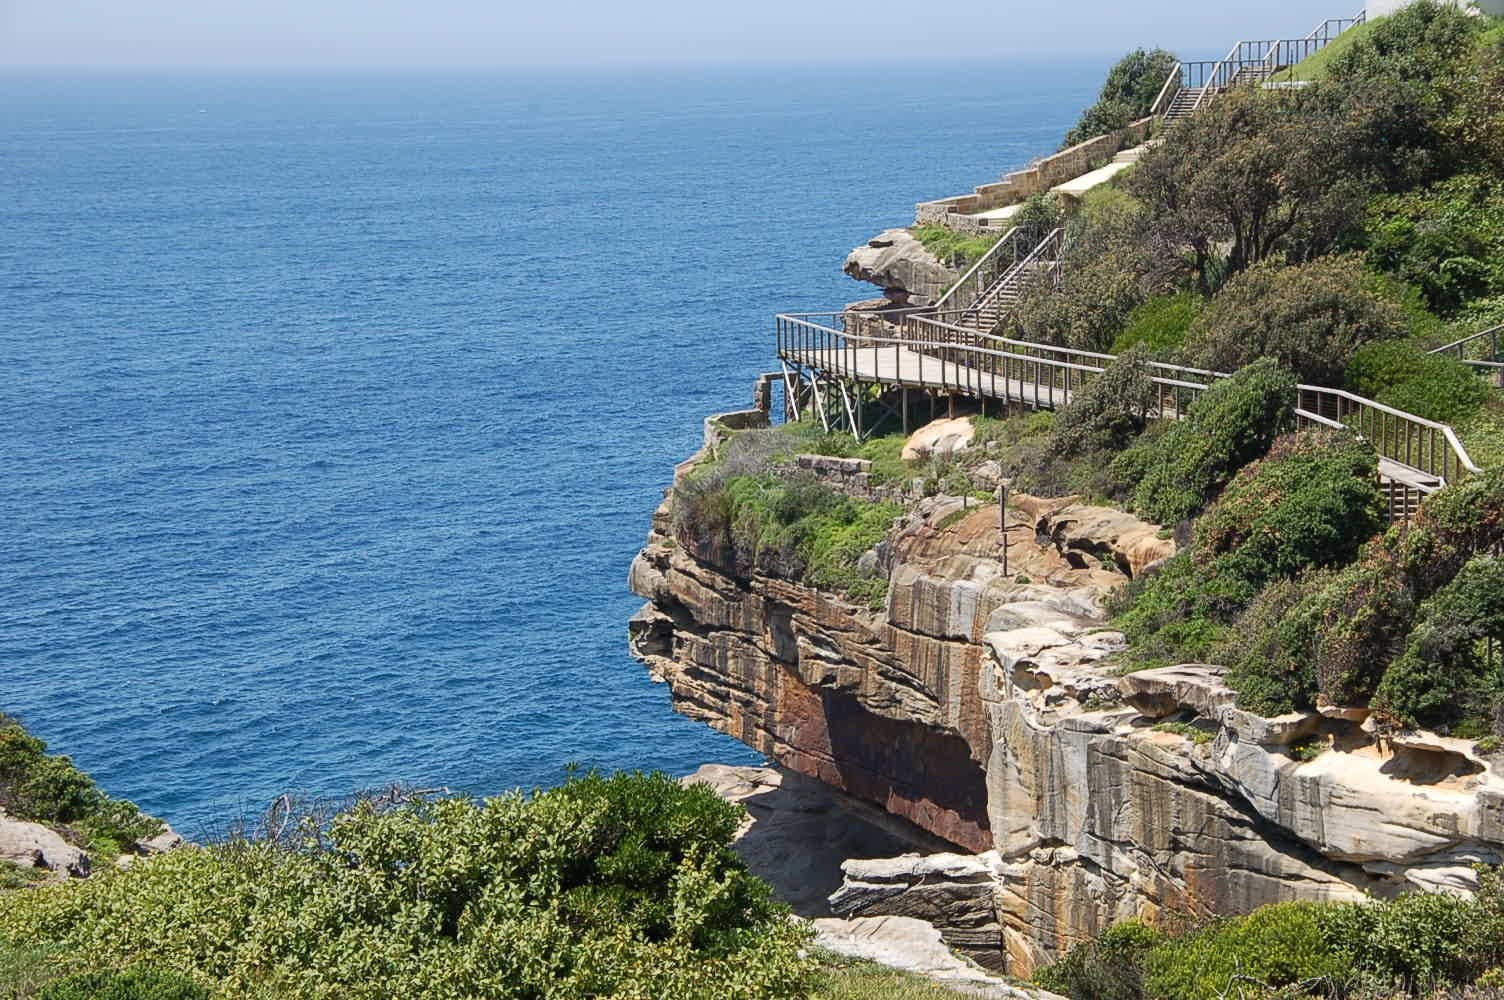 Example of a cliff top walkway